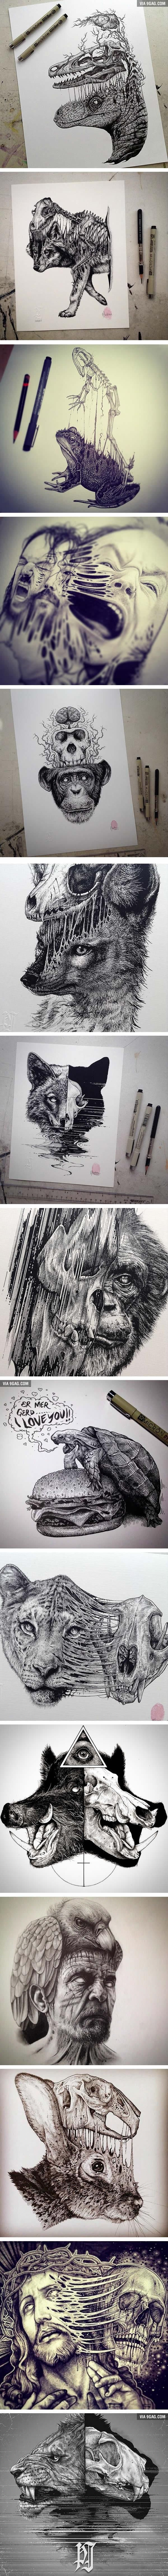 Animals Leave Their Skeletons Behind In These Stunning Dark Drawings (By Paul Jackson) artist research